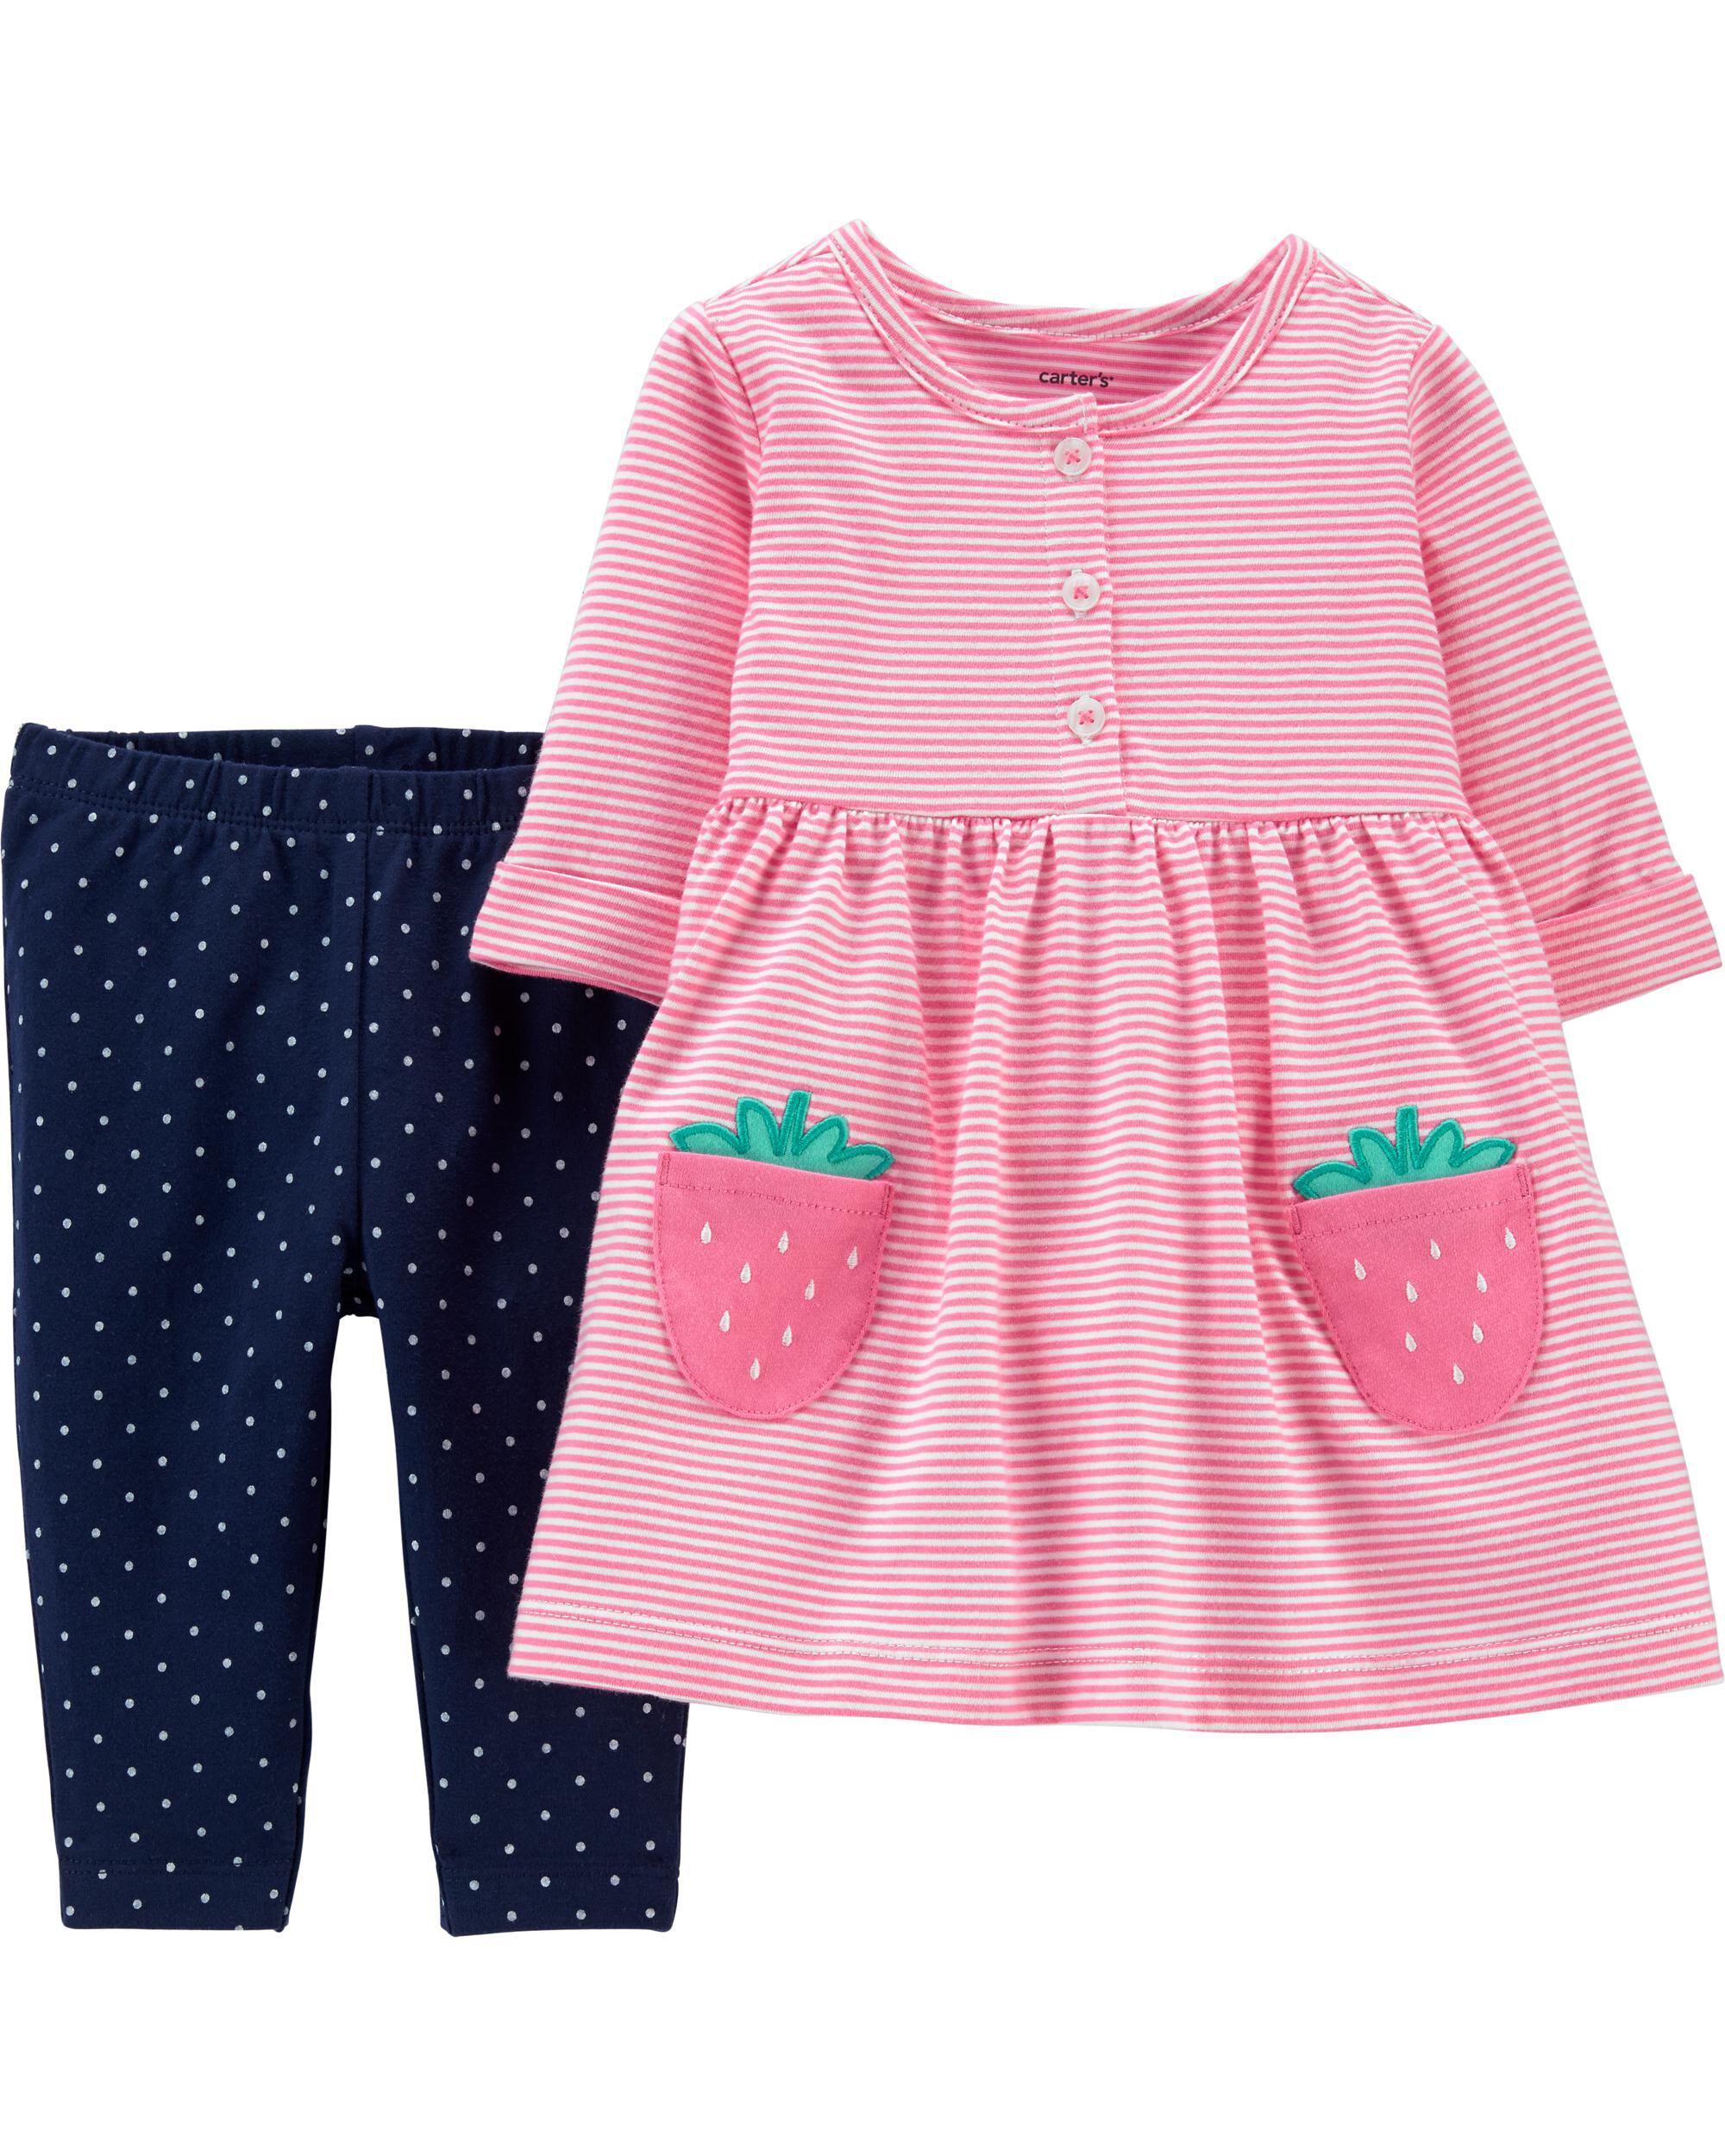 *CLEARANCE* 2-Piece Strawberry Jersey Dress & Polka Dot Legging Set